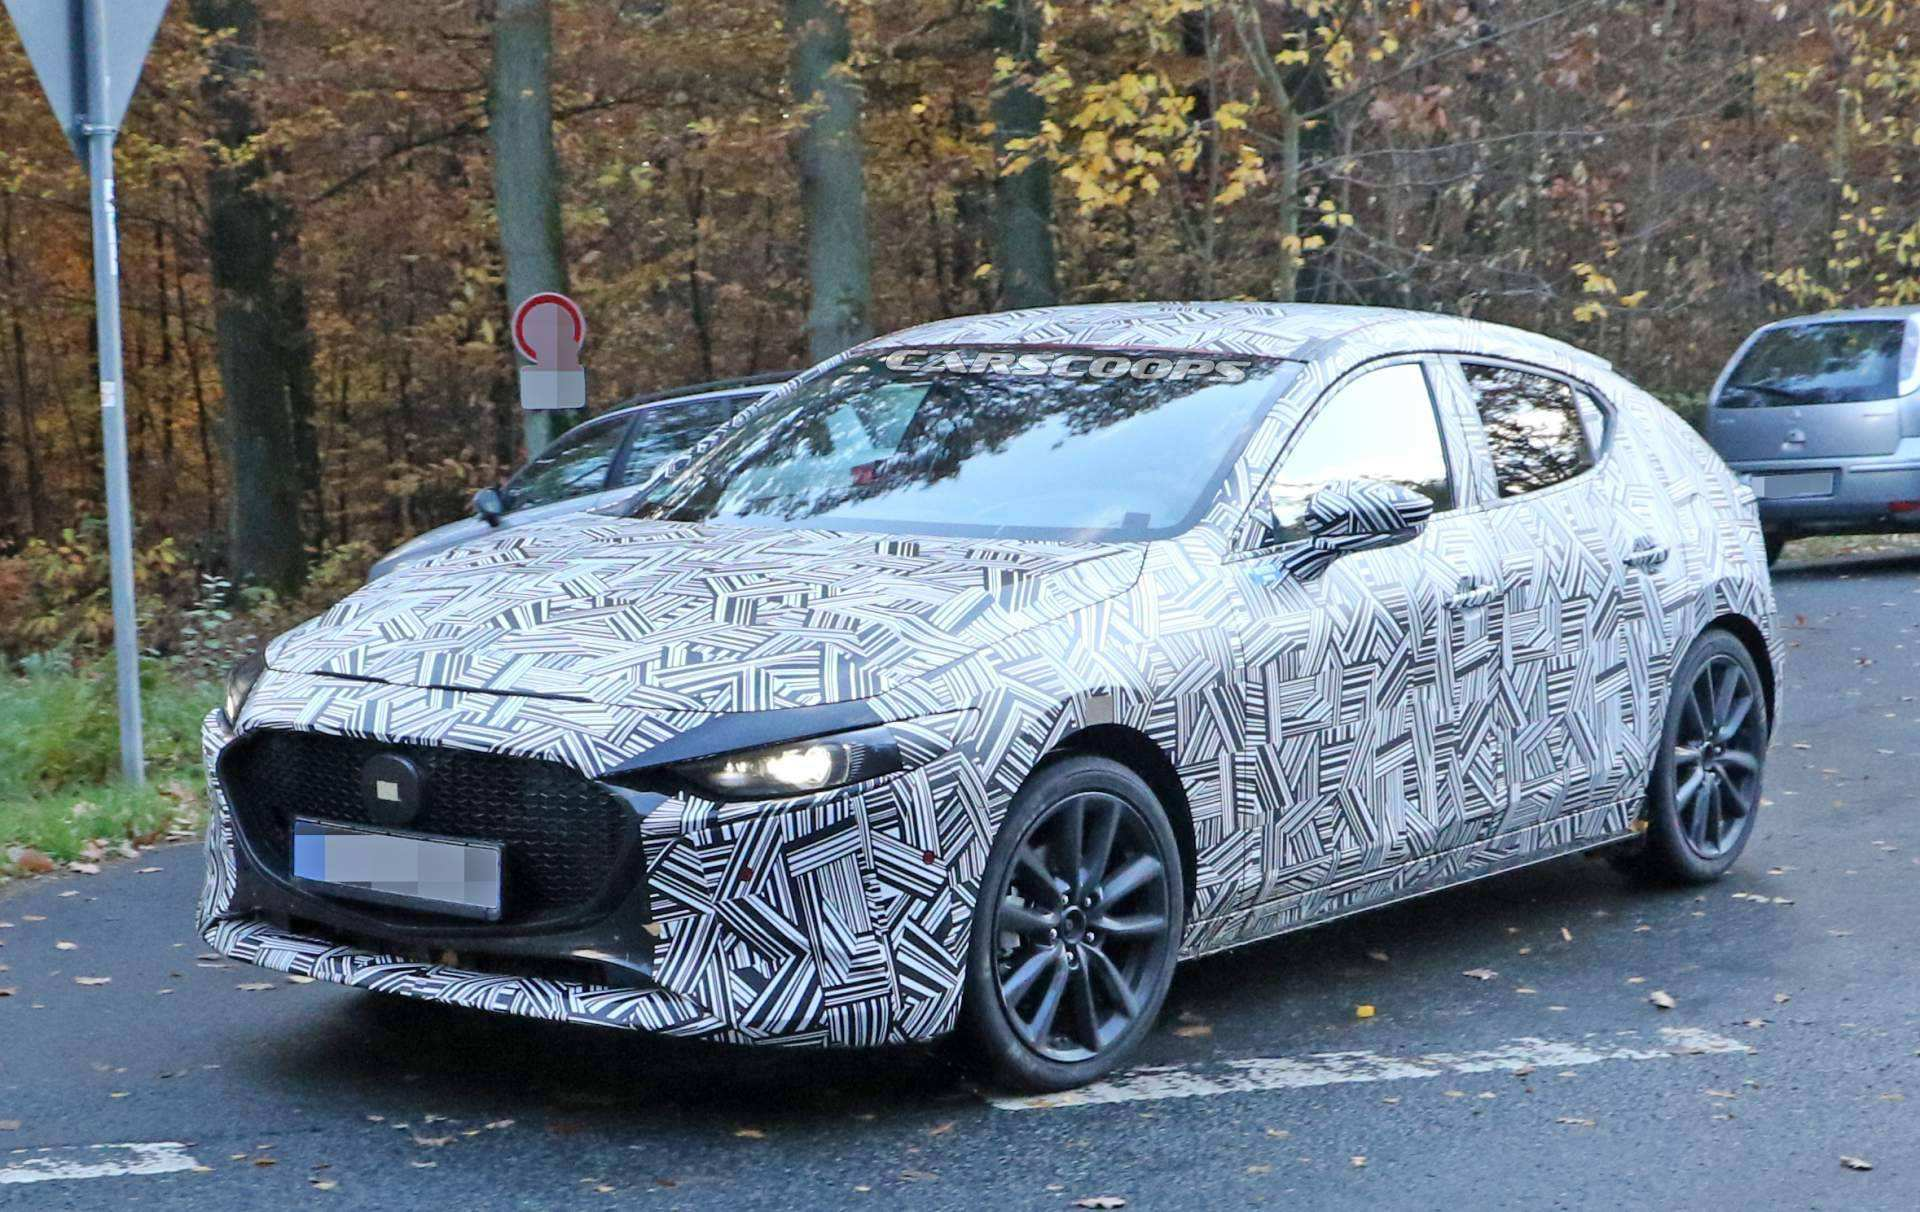 38 Best Review Mazda Nd 2019 Spy Shoot Picture with Mazda Nd 2019 Spy Shoot